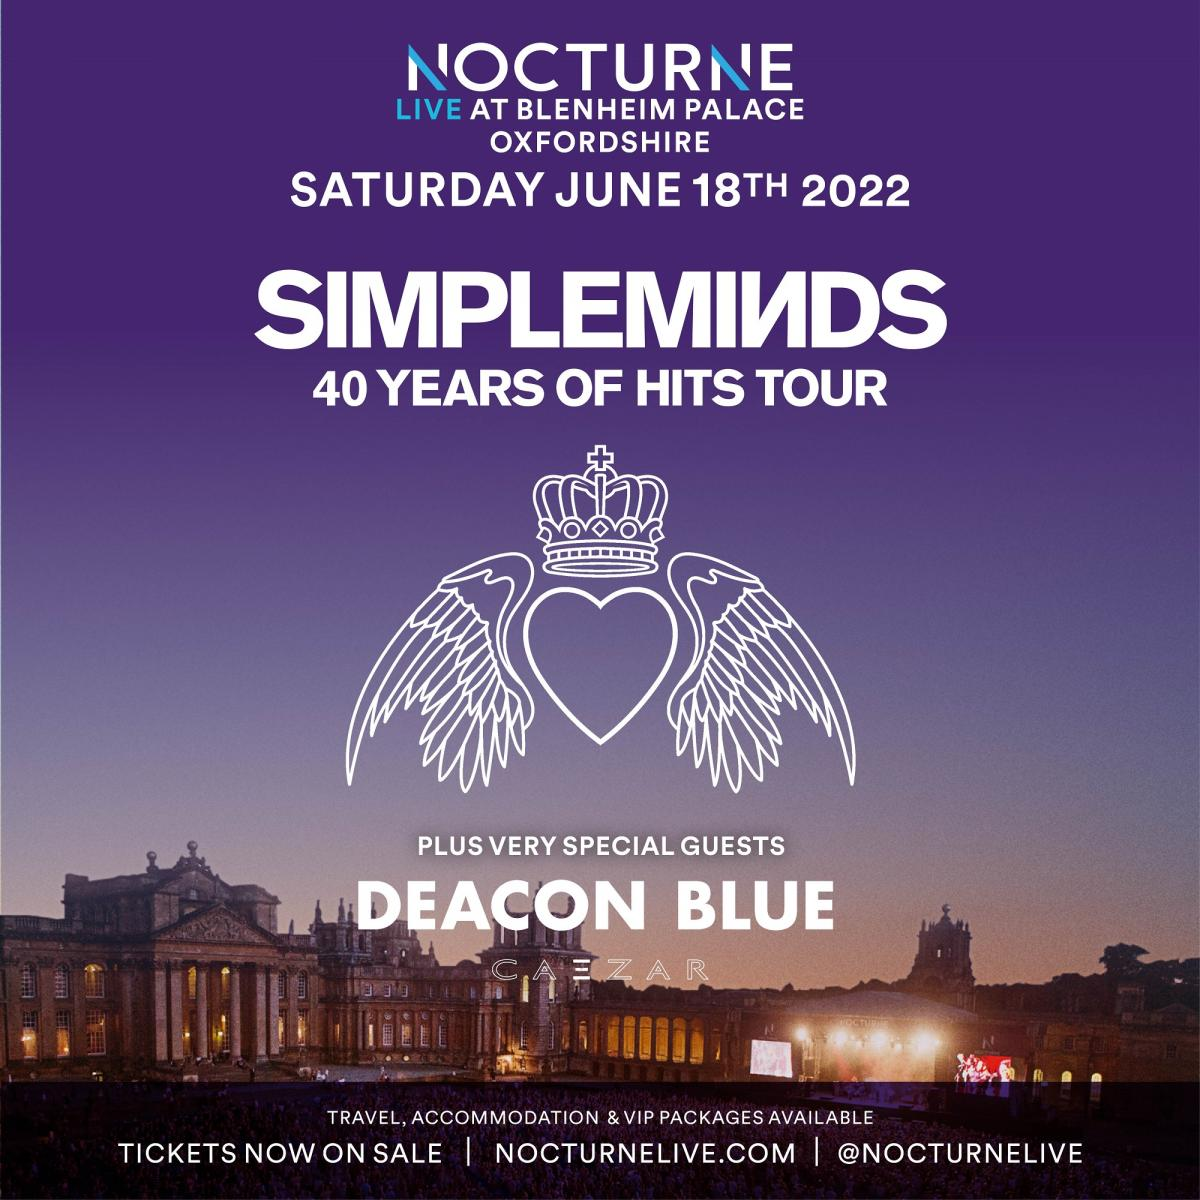 Nocturne Live 2022 at Blenheim Palace - Poster 04